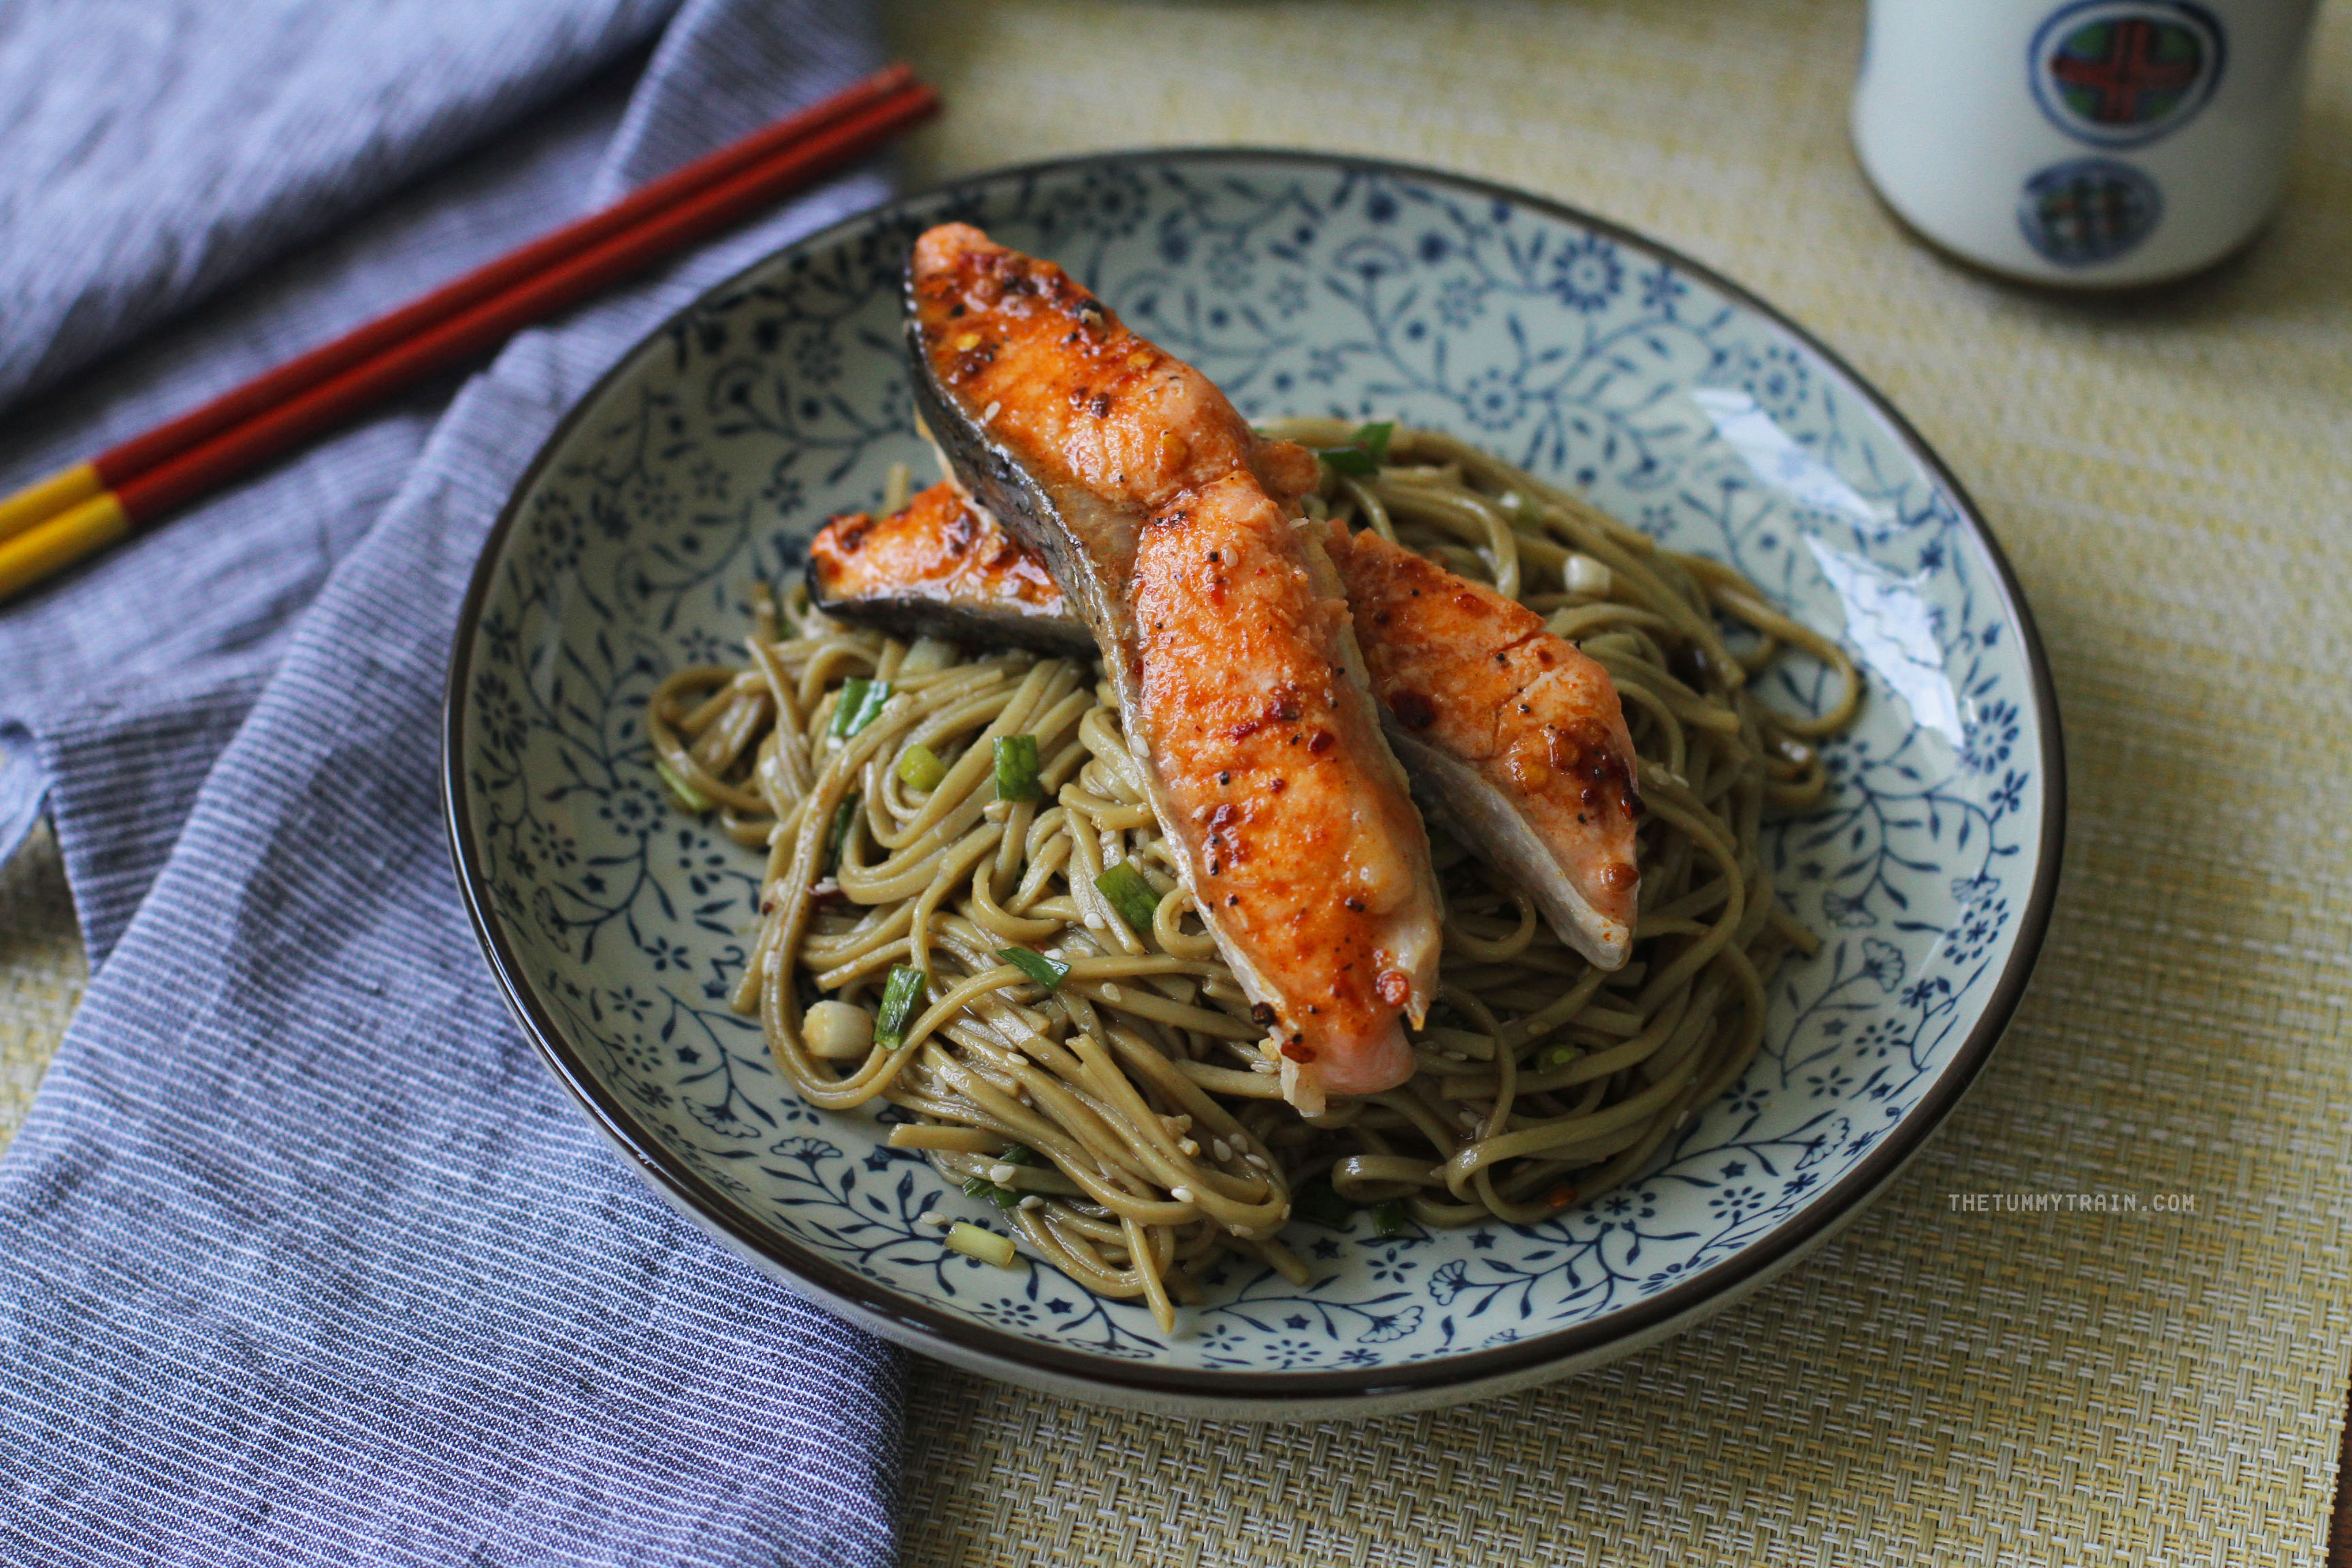 Soba and Salmon 2 - My favourite Sesame Soba topped with sweet-spicy salmon